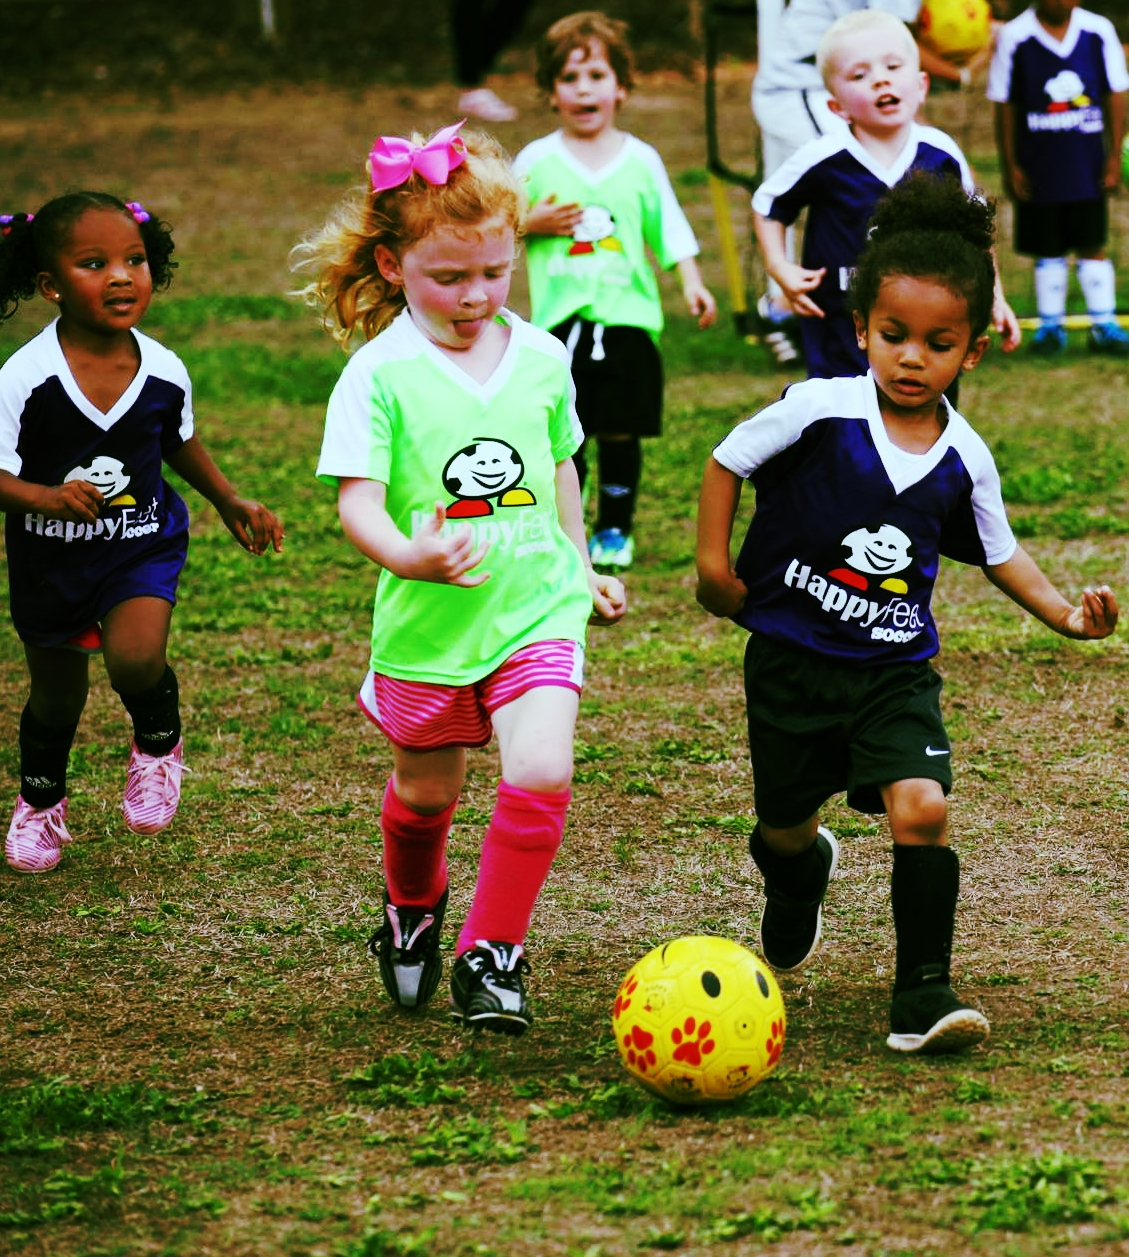 Summer League- I'On Club in Mt. Pleasant - Who: Boys and Girls Ages 2-6What: Each session is 1 hour long and consists of a 30 minute